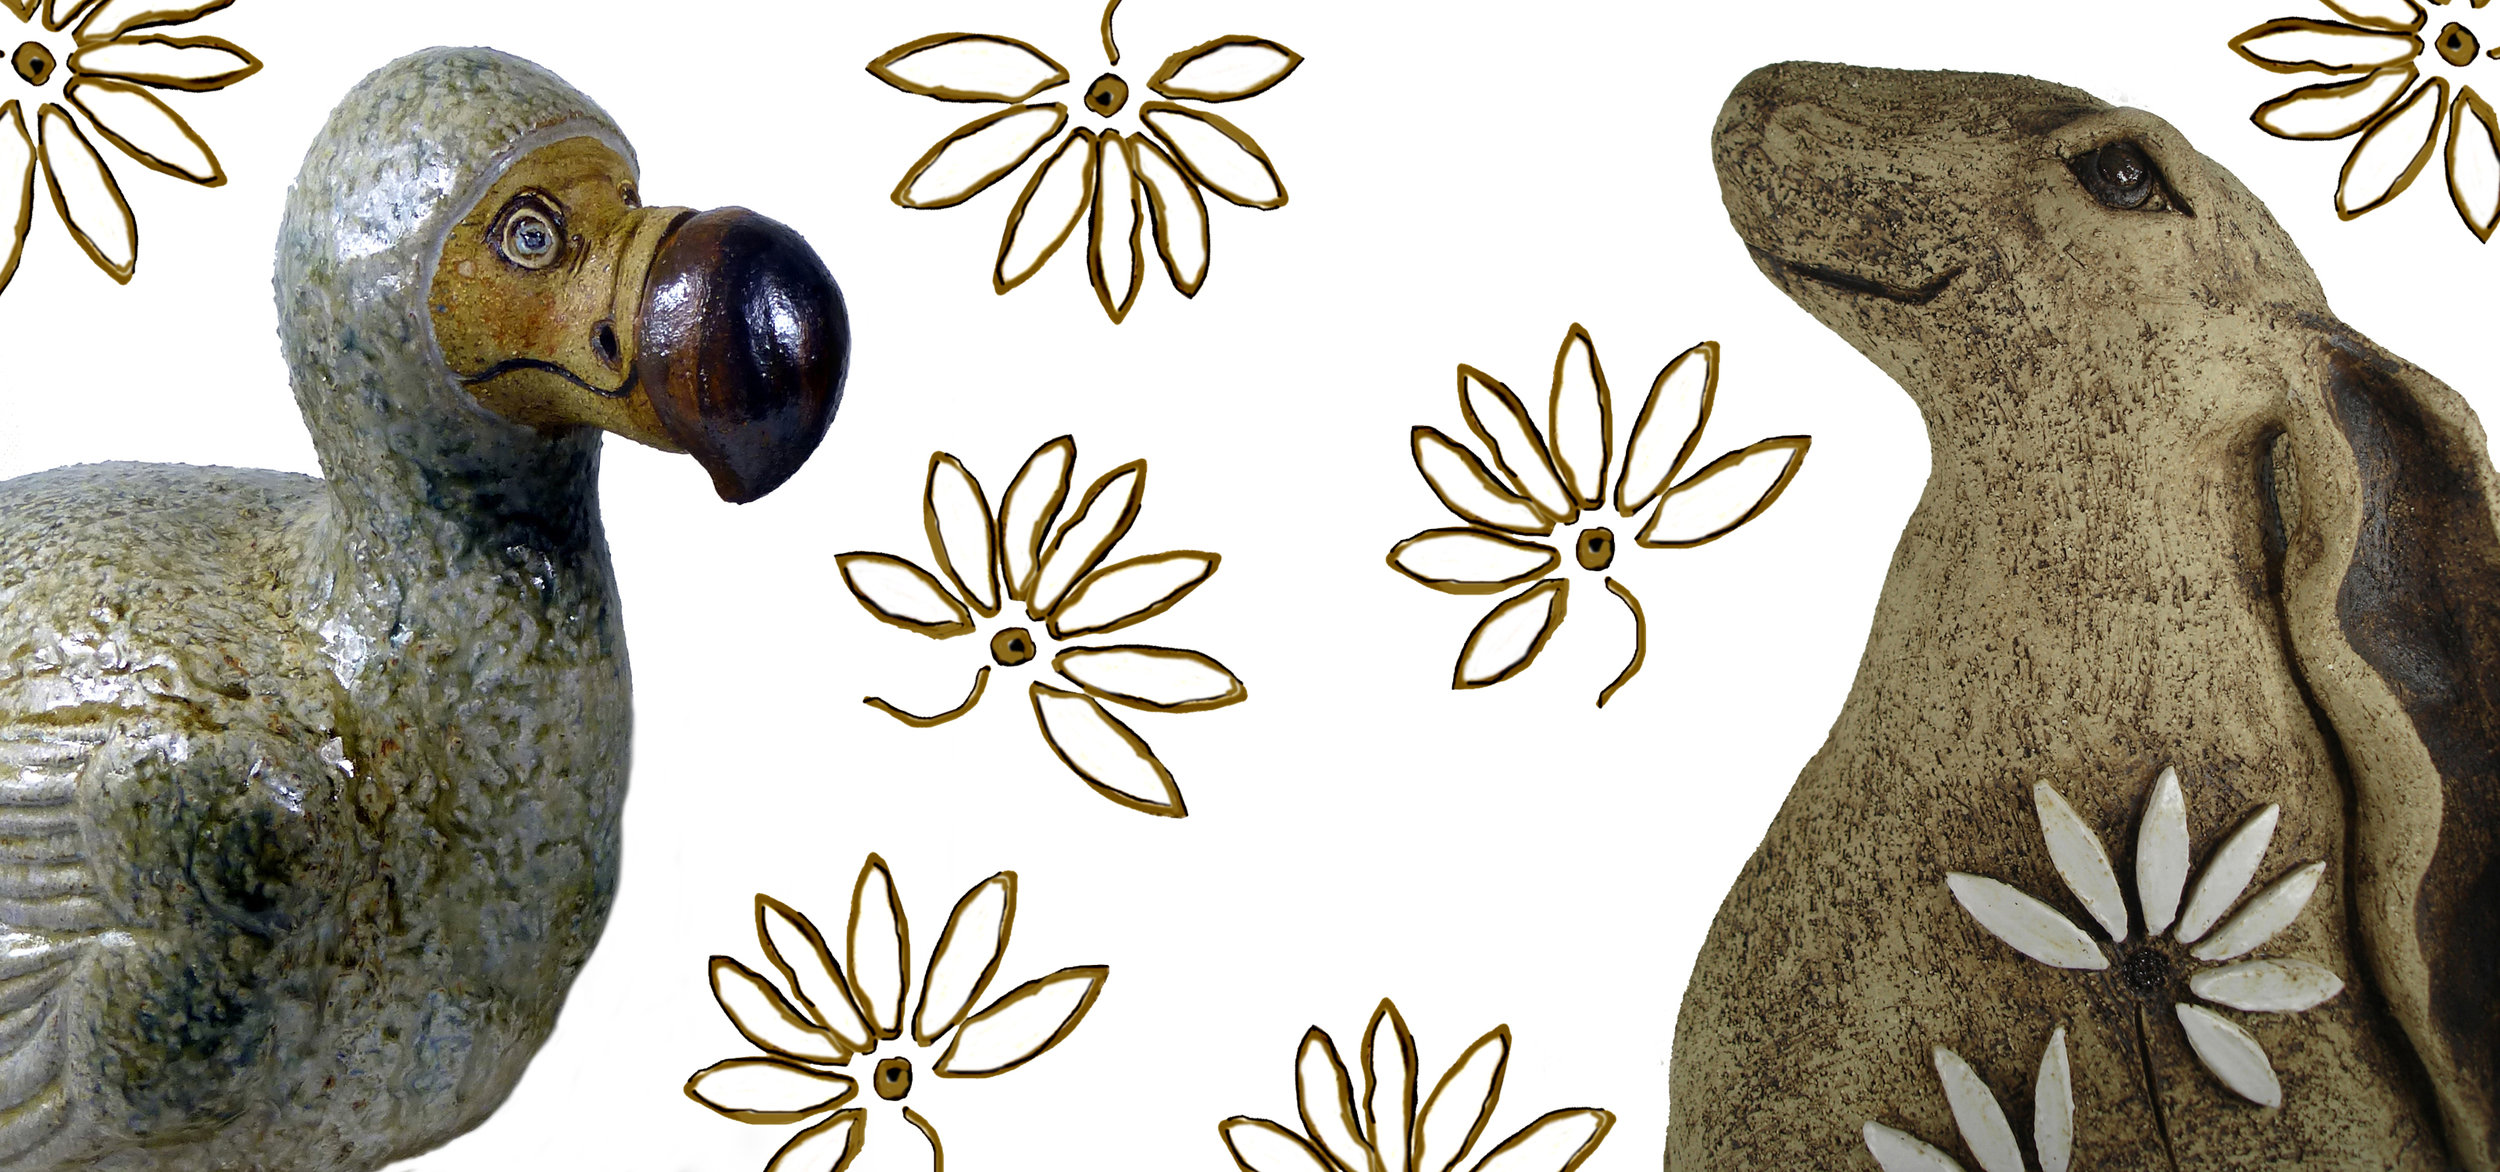 3 Dodo and Hare with Daisies 1500x3200